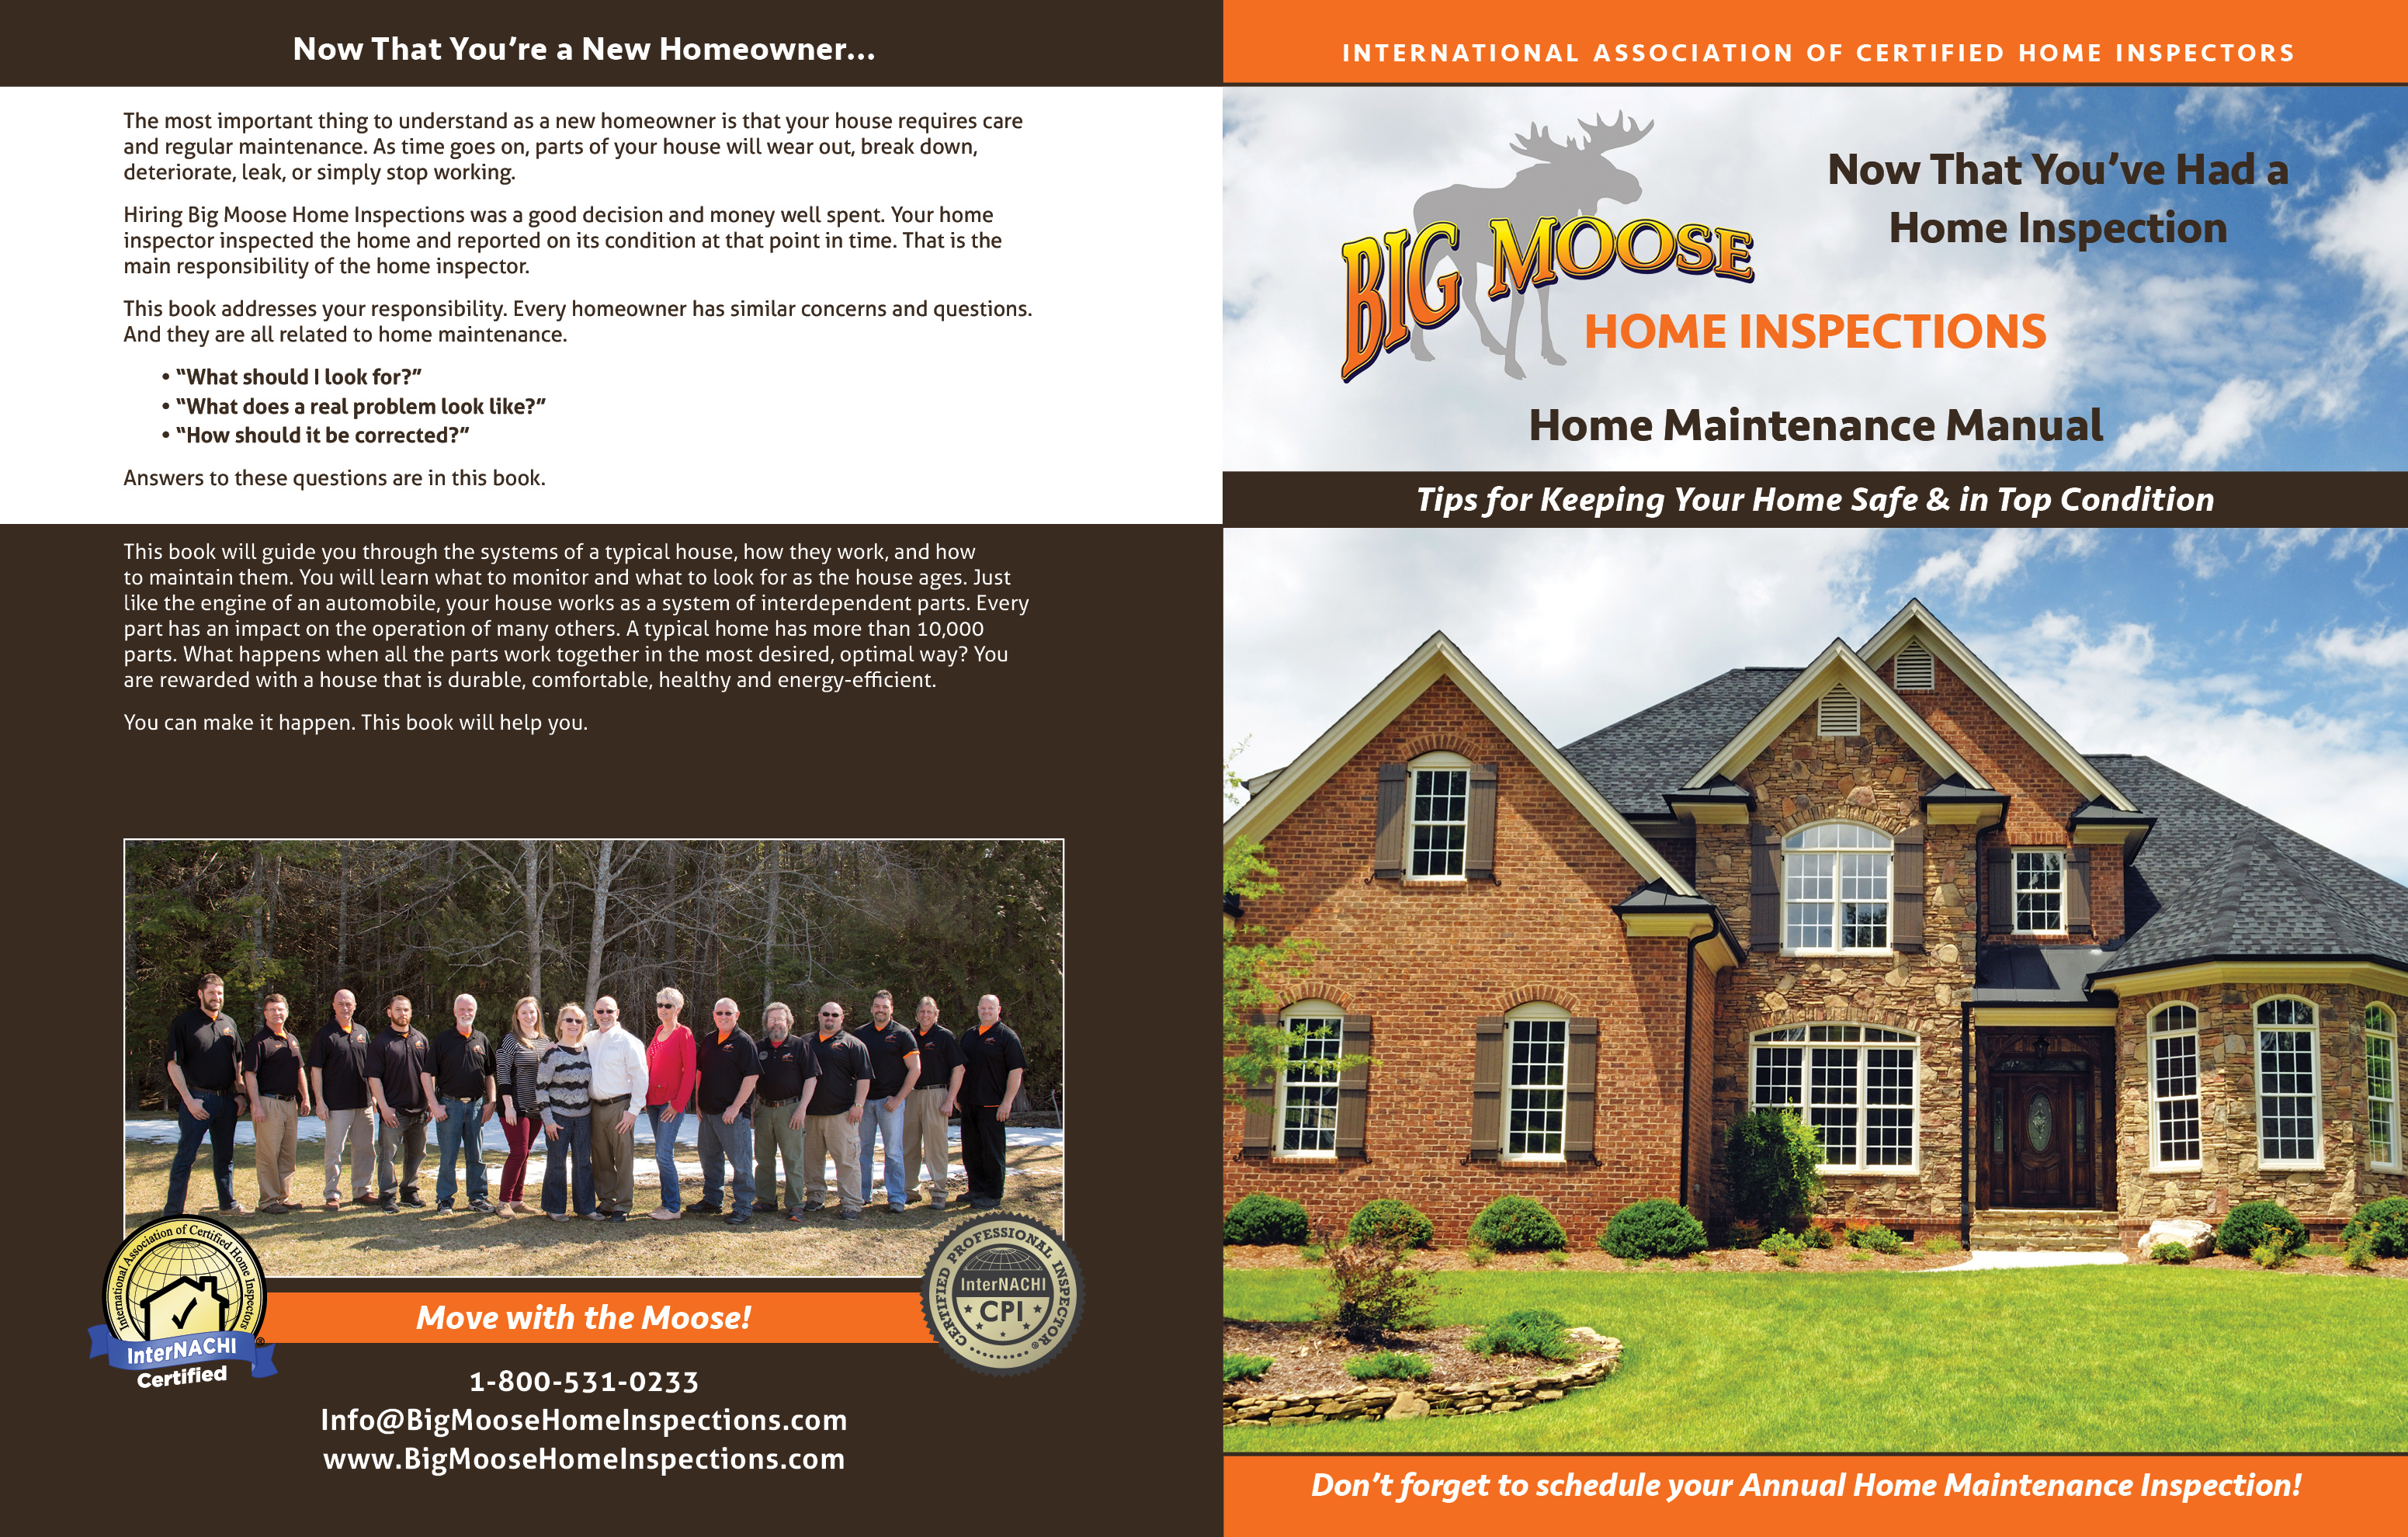 Custom Home Maintenance Book for Moose Home Inspections